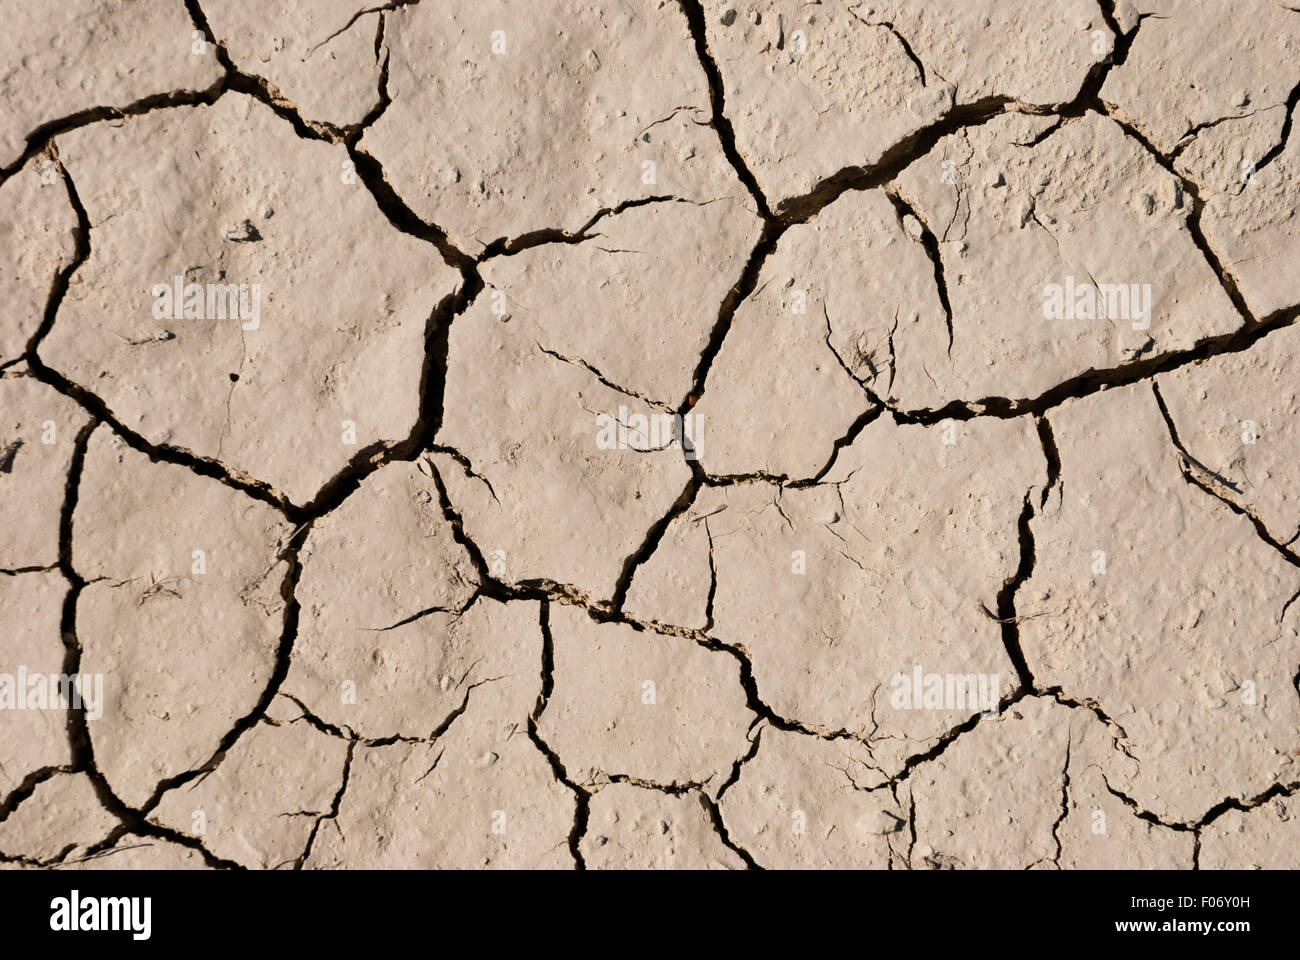 Textural Surface Of Dry Cracking Parched Earth Closeup For Textural Stock .